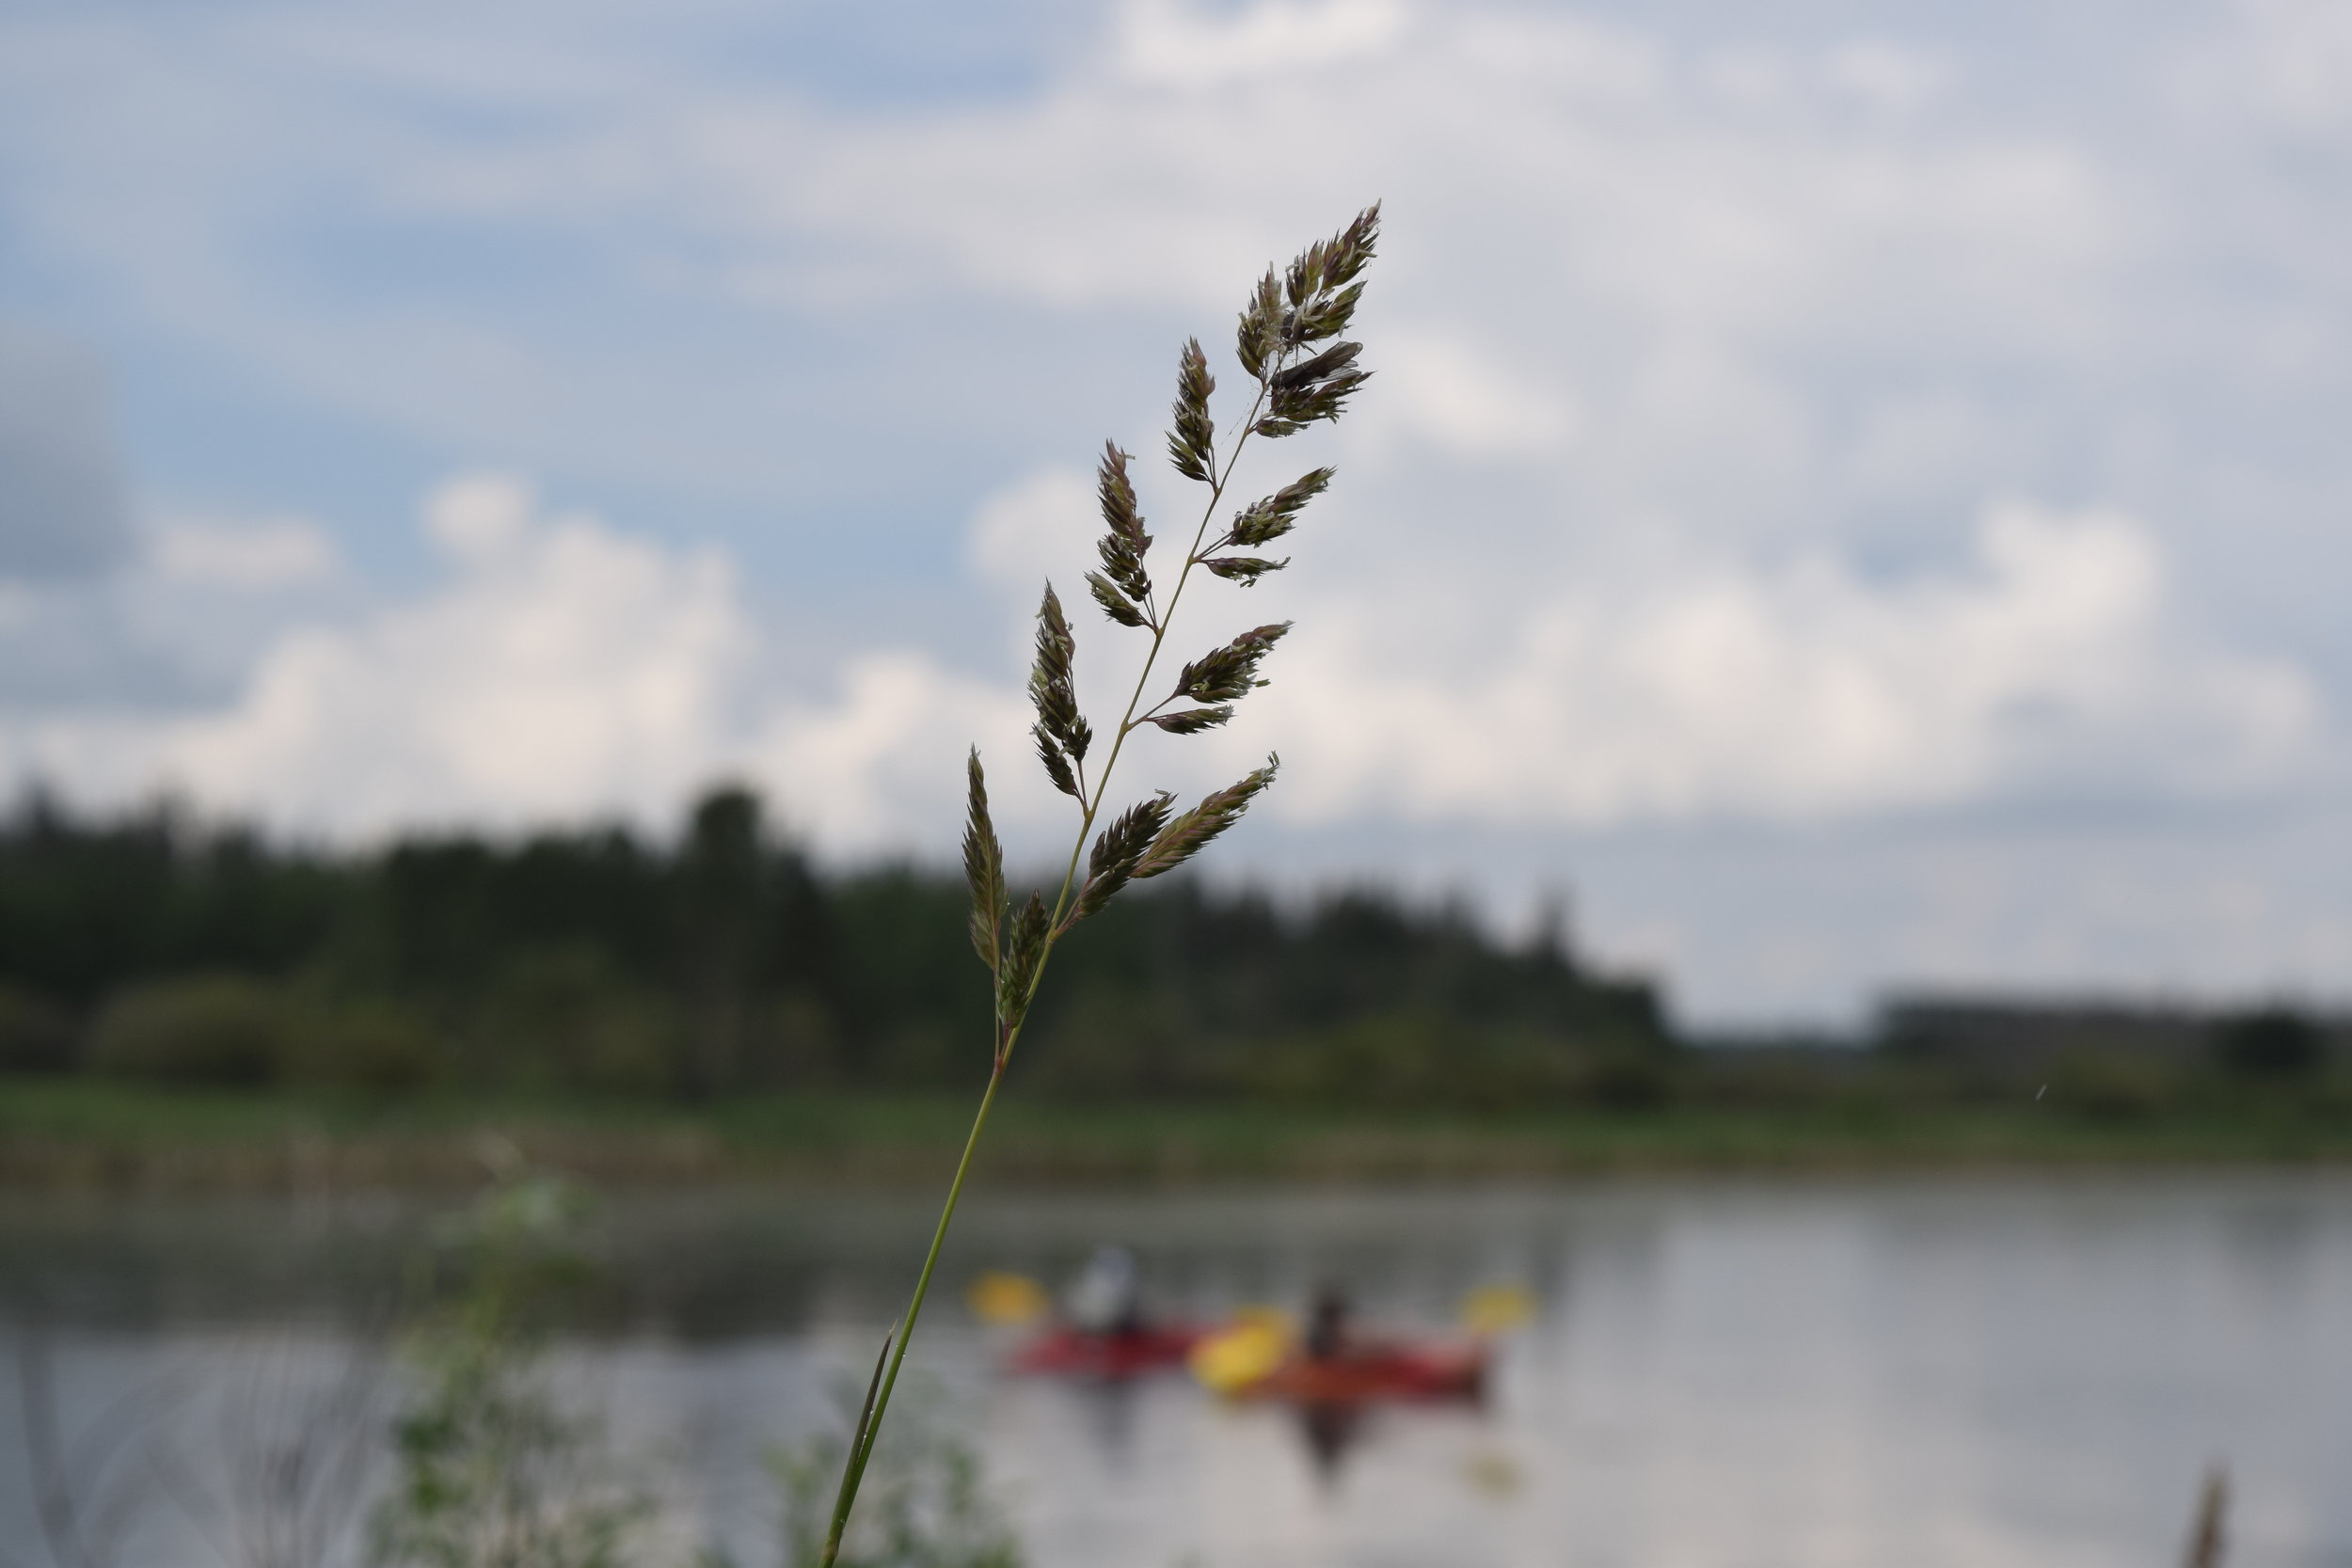 The Sturgeon River presents a serene landscape that is now safe enough for kayakers and wildlife alike.